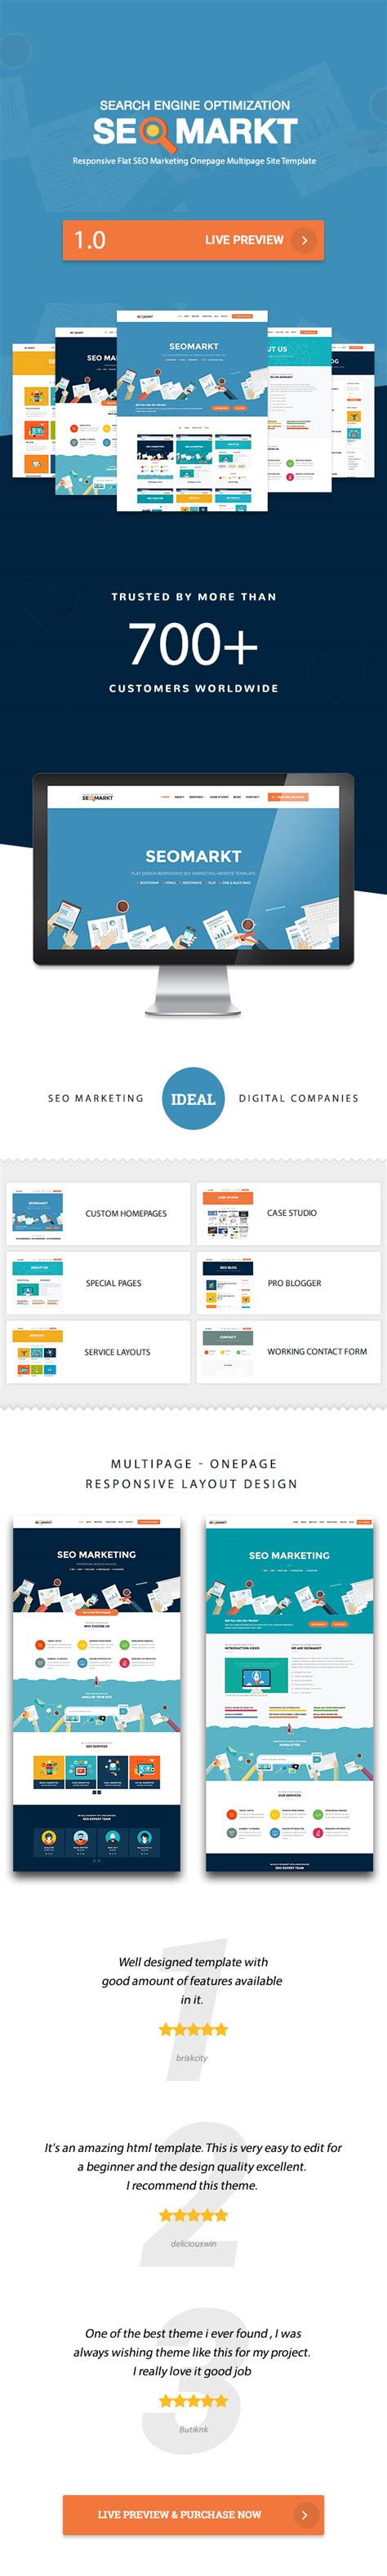 Seomarkt Responsive Flat Seo Marketing Onepage Multipage Site Template By Wordpressshowcase Search Engine Website Template